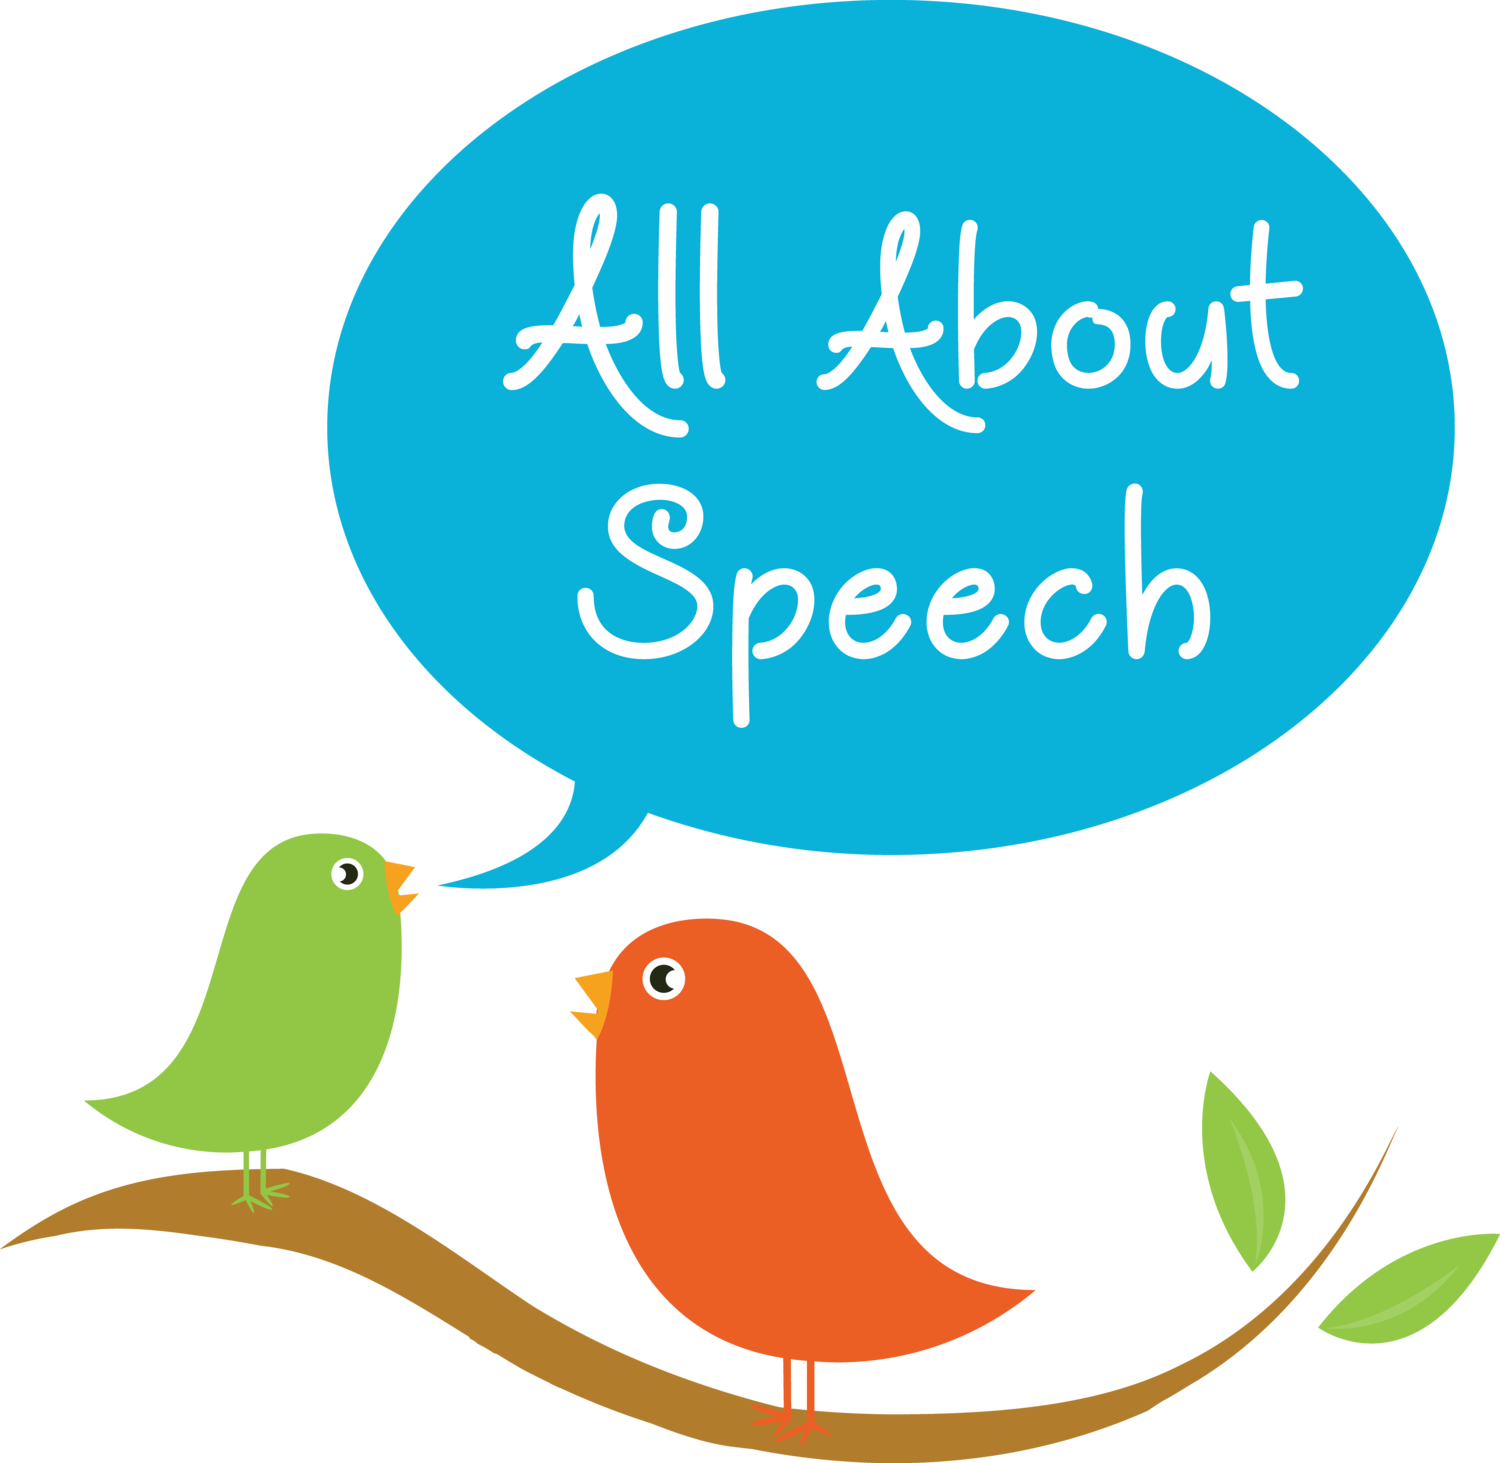 New York City Speech-Language Pathology Practice — All About Speech